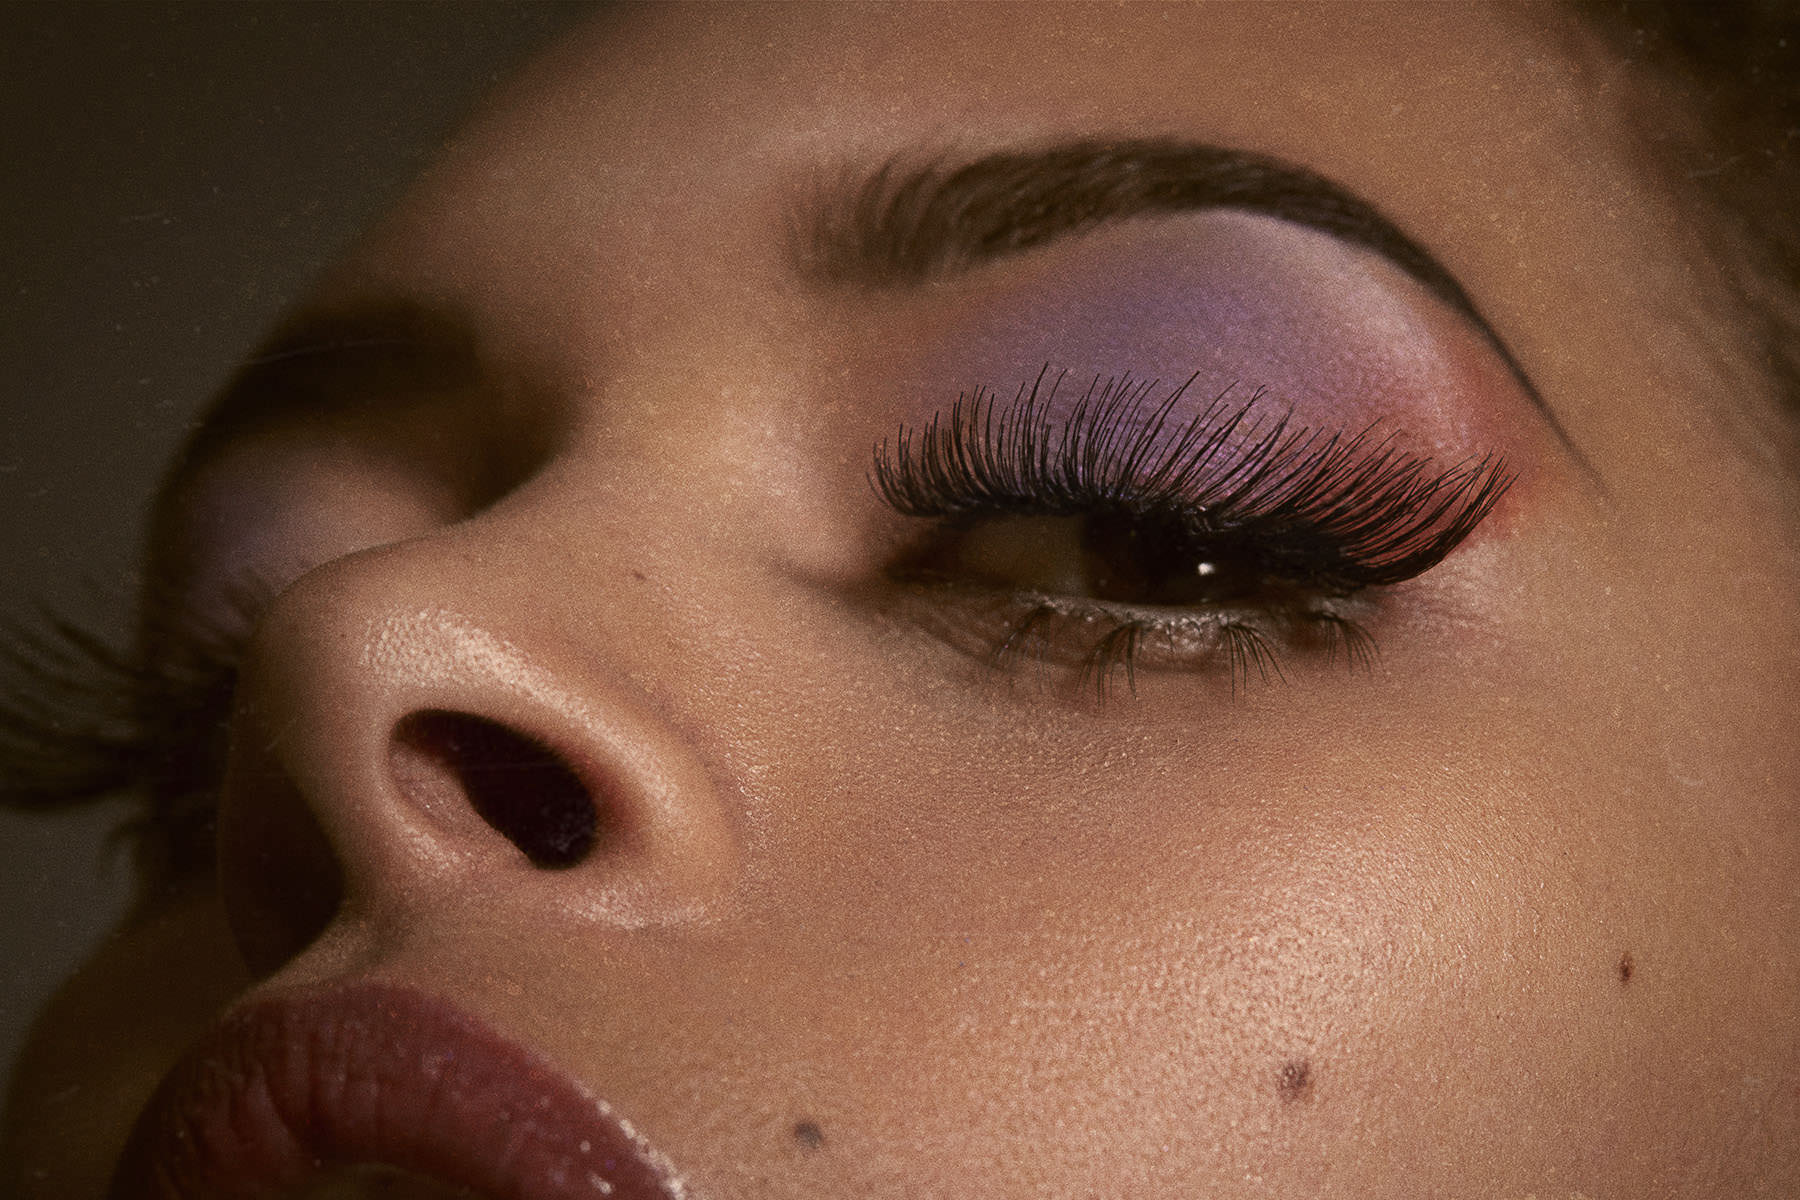 Close-up of a woman with purple eyeshadow and long lashes